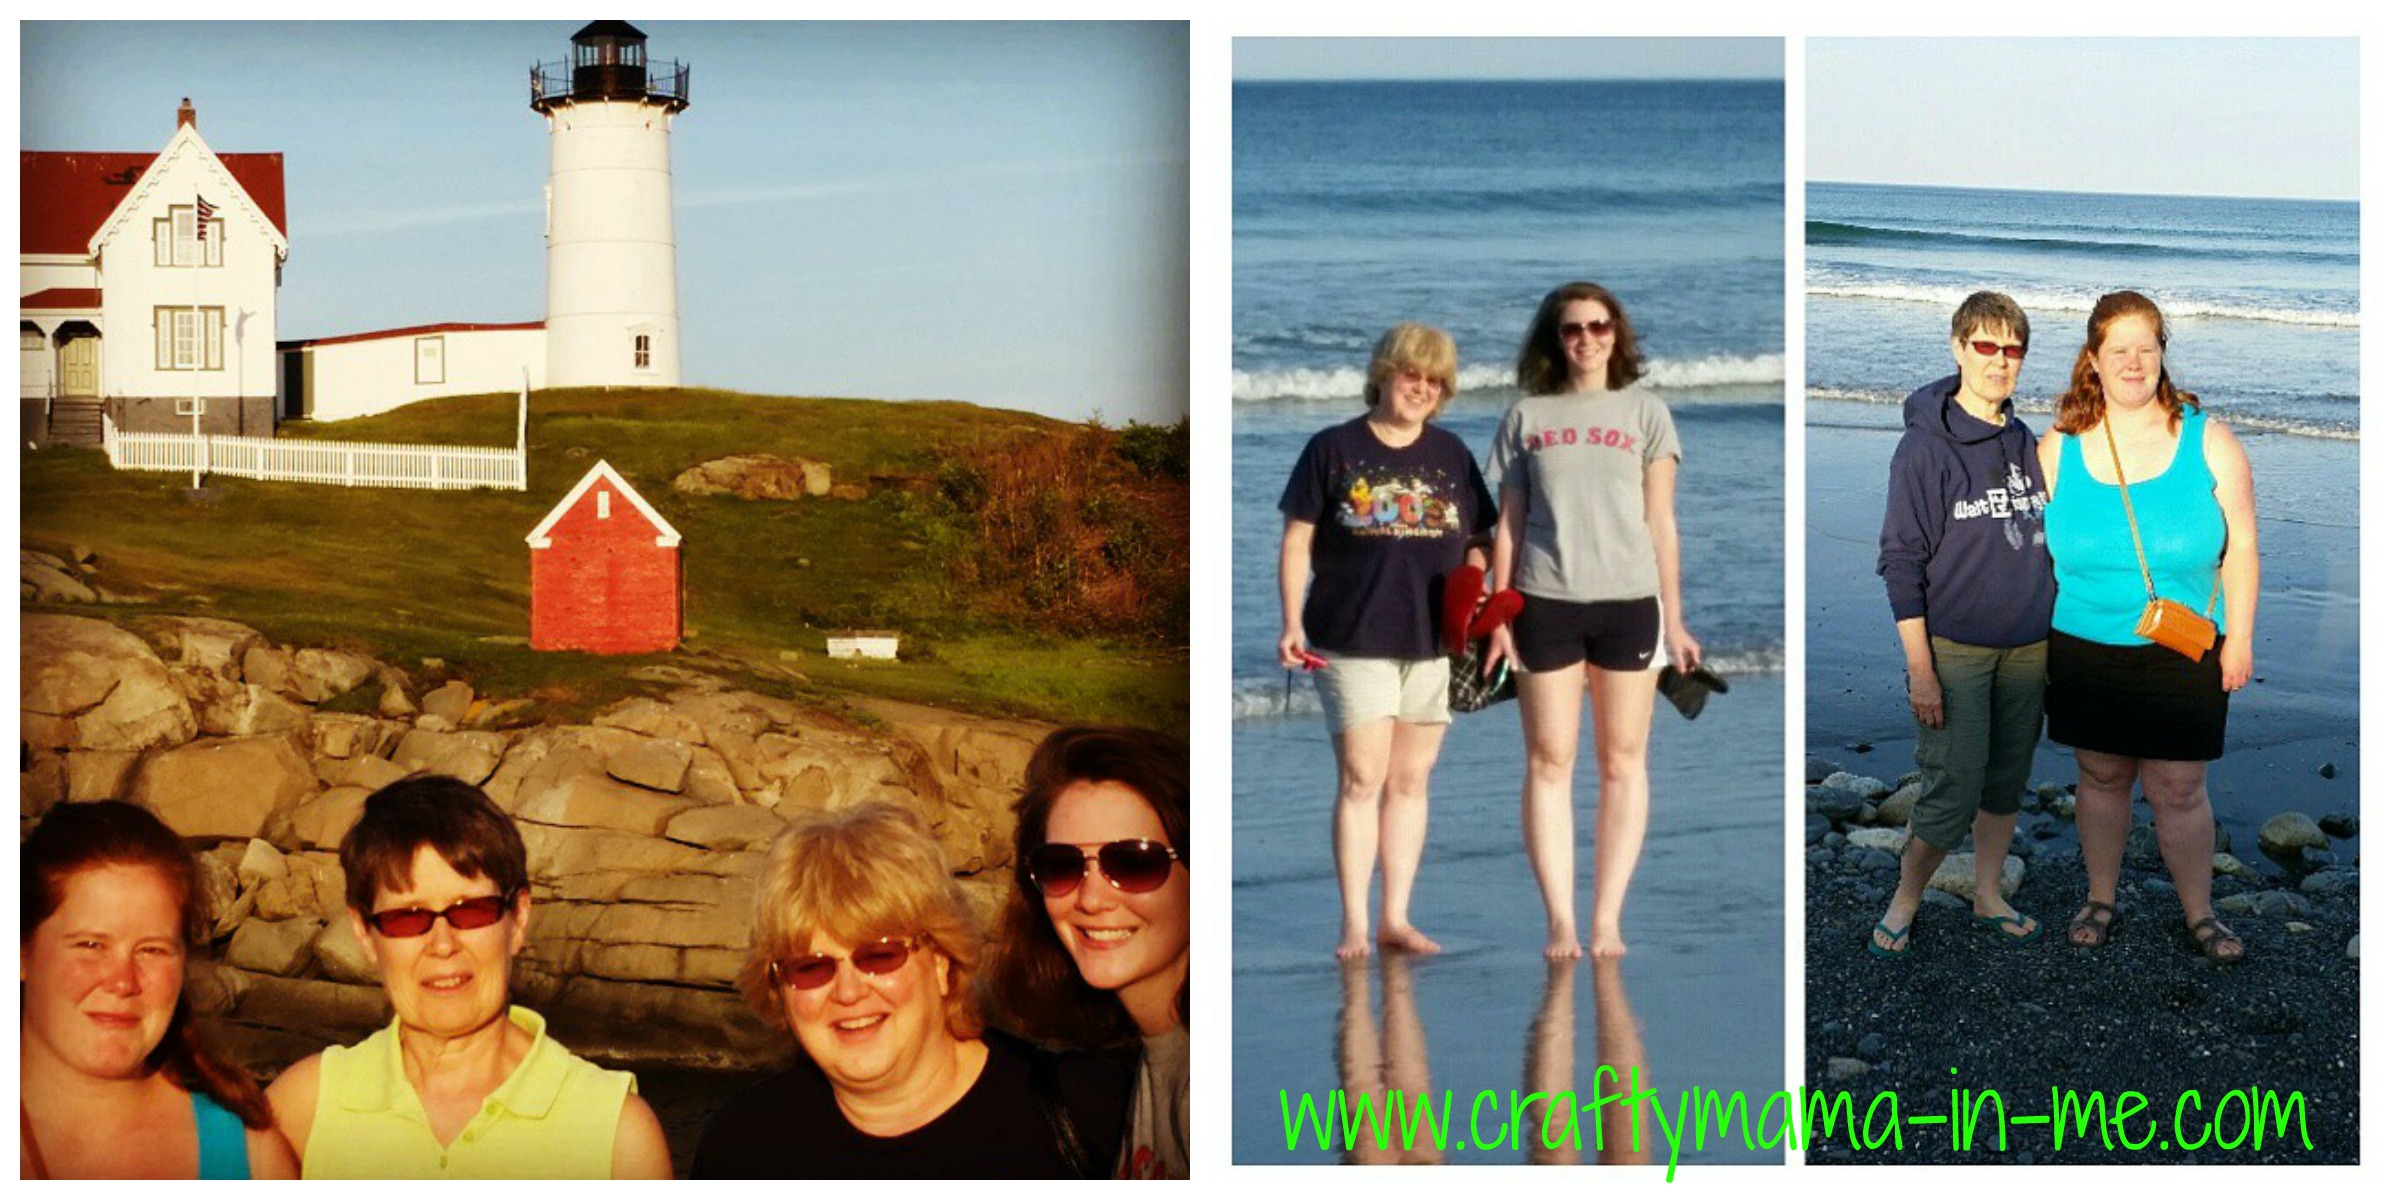 Family Friendly Activities in and around York, Maine